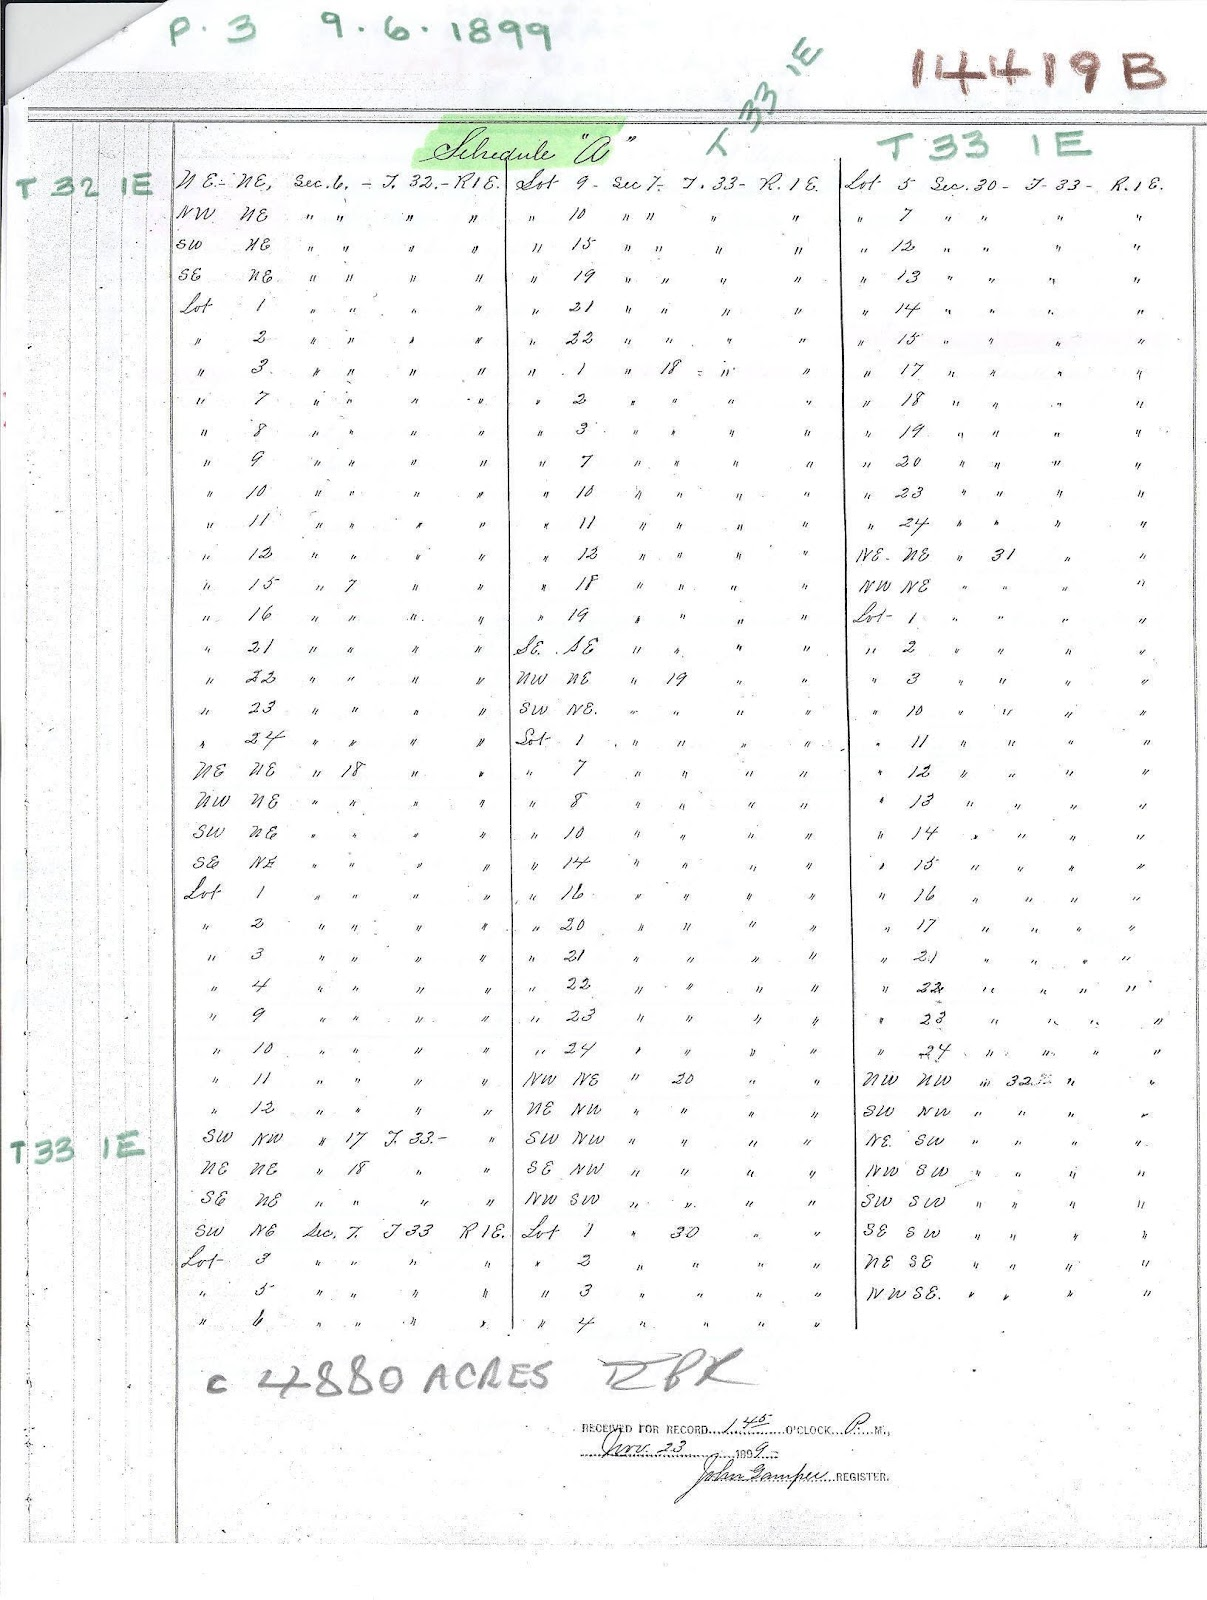 C:\Users\Robert P. Rusch\Desktop\II. RLHSoc\Documents & Photos-Scanned\Rib Lake History 14400-14499\14419B-legal descriptions of land affected.jpg